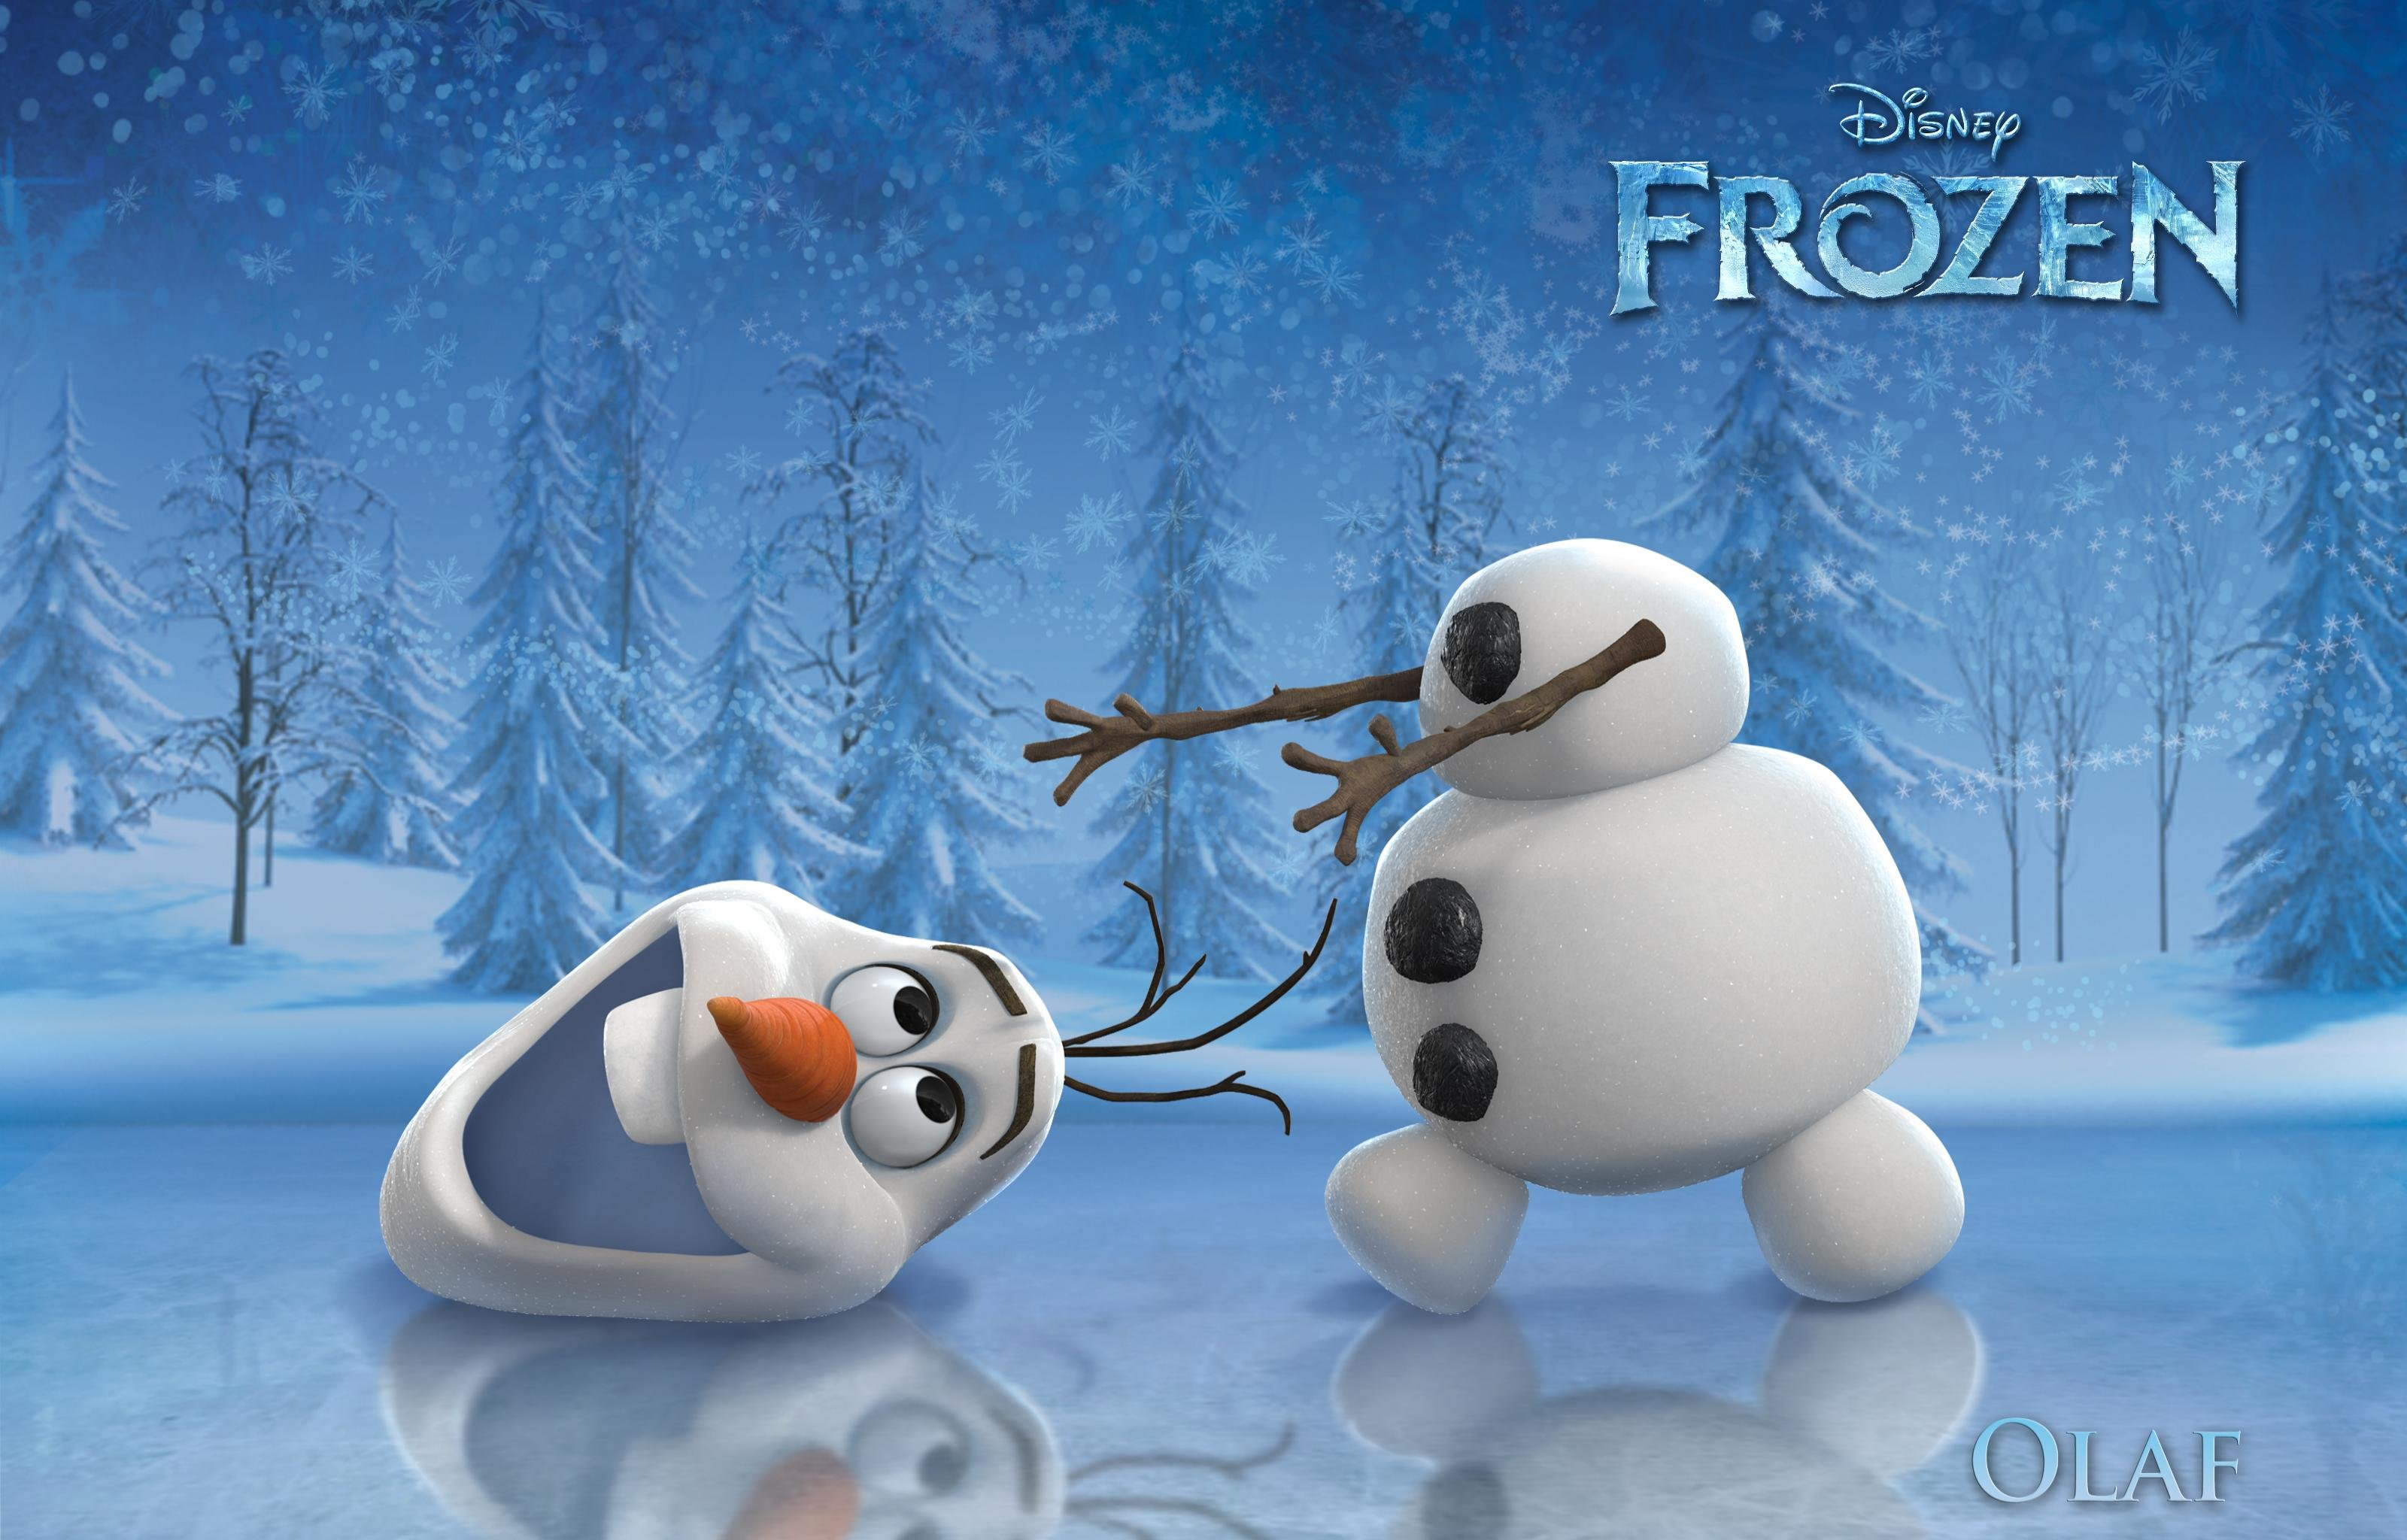 Olaf Frozen Wallpapers Hd For Desktop Backgrounds